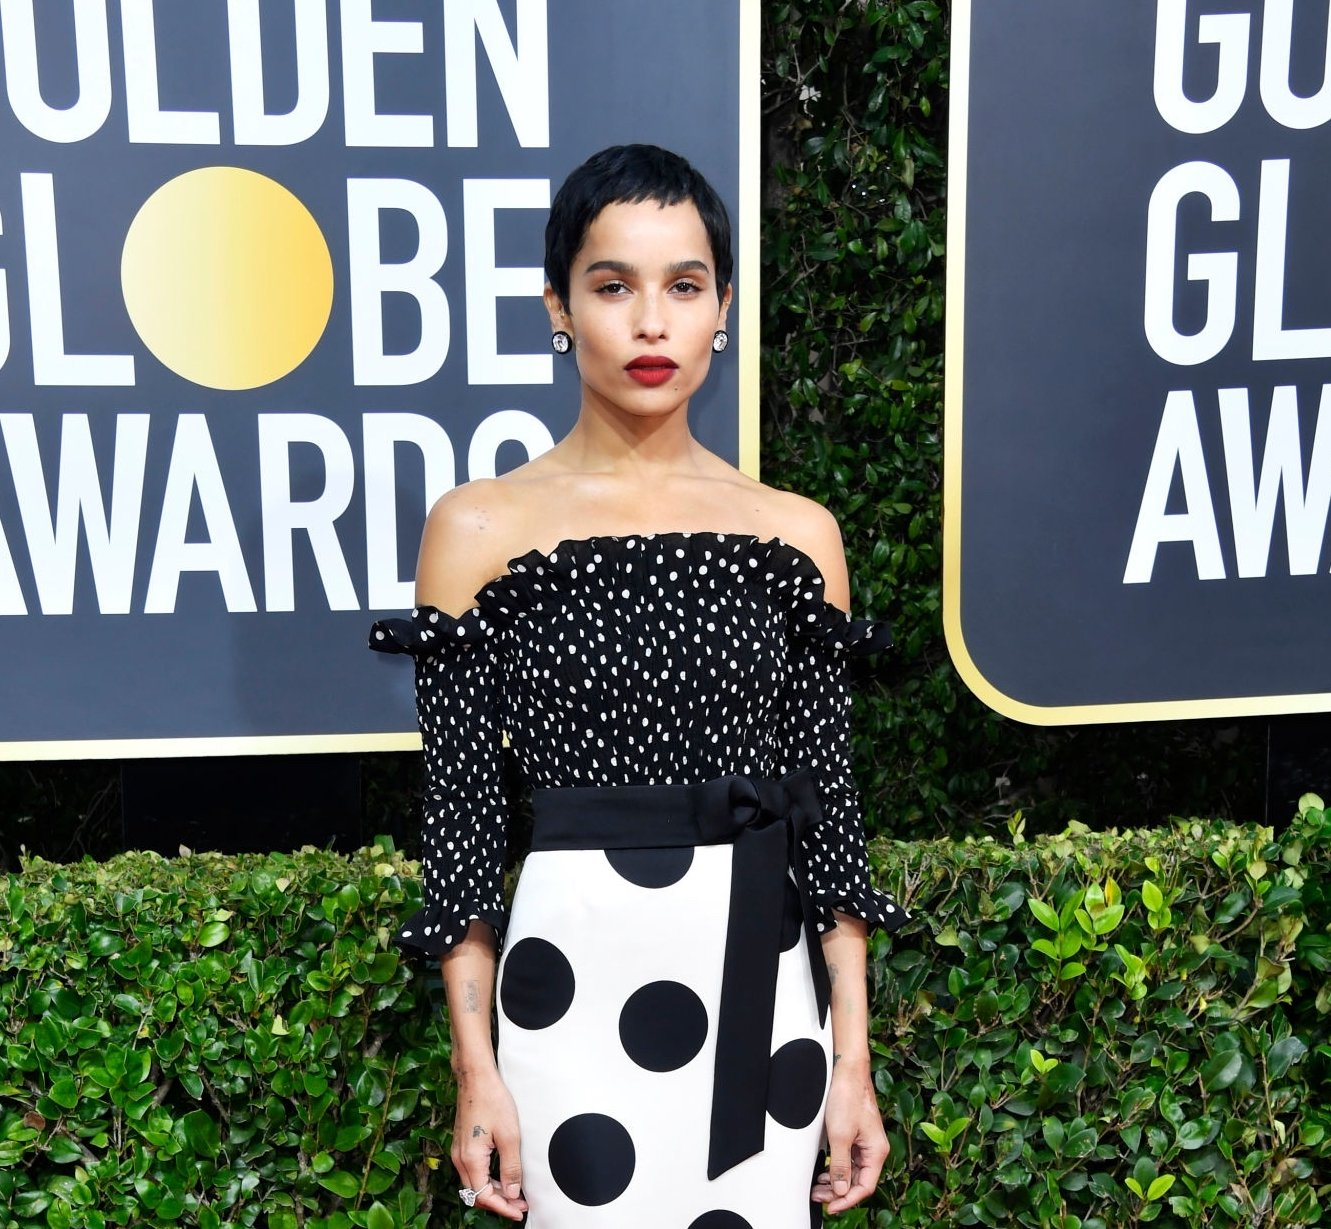 Image Credit: Getty Images/Zoe at the Golden Globes